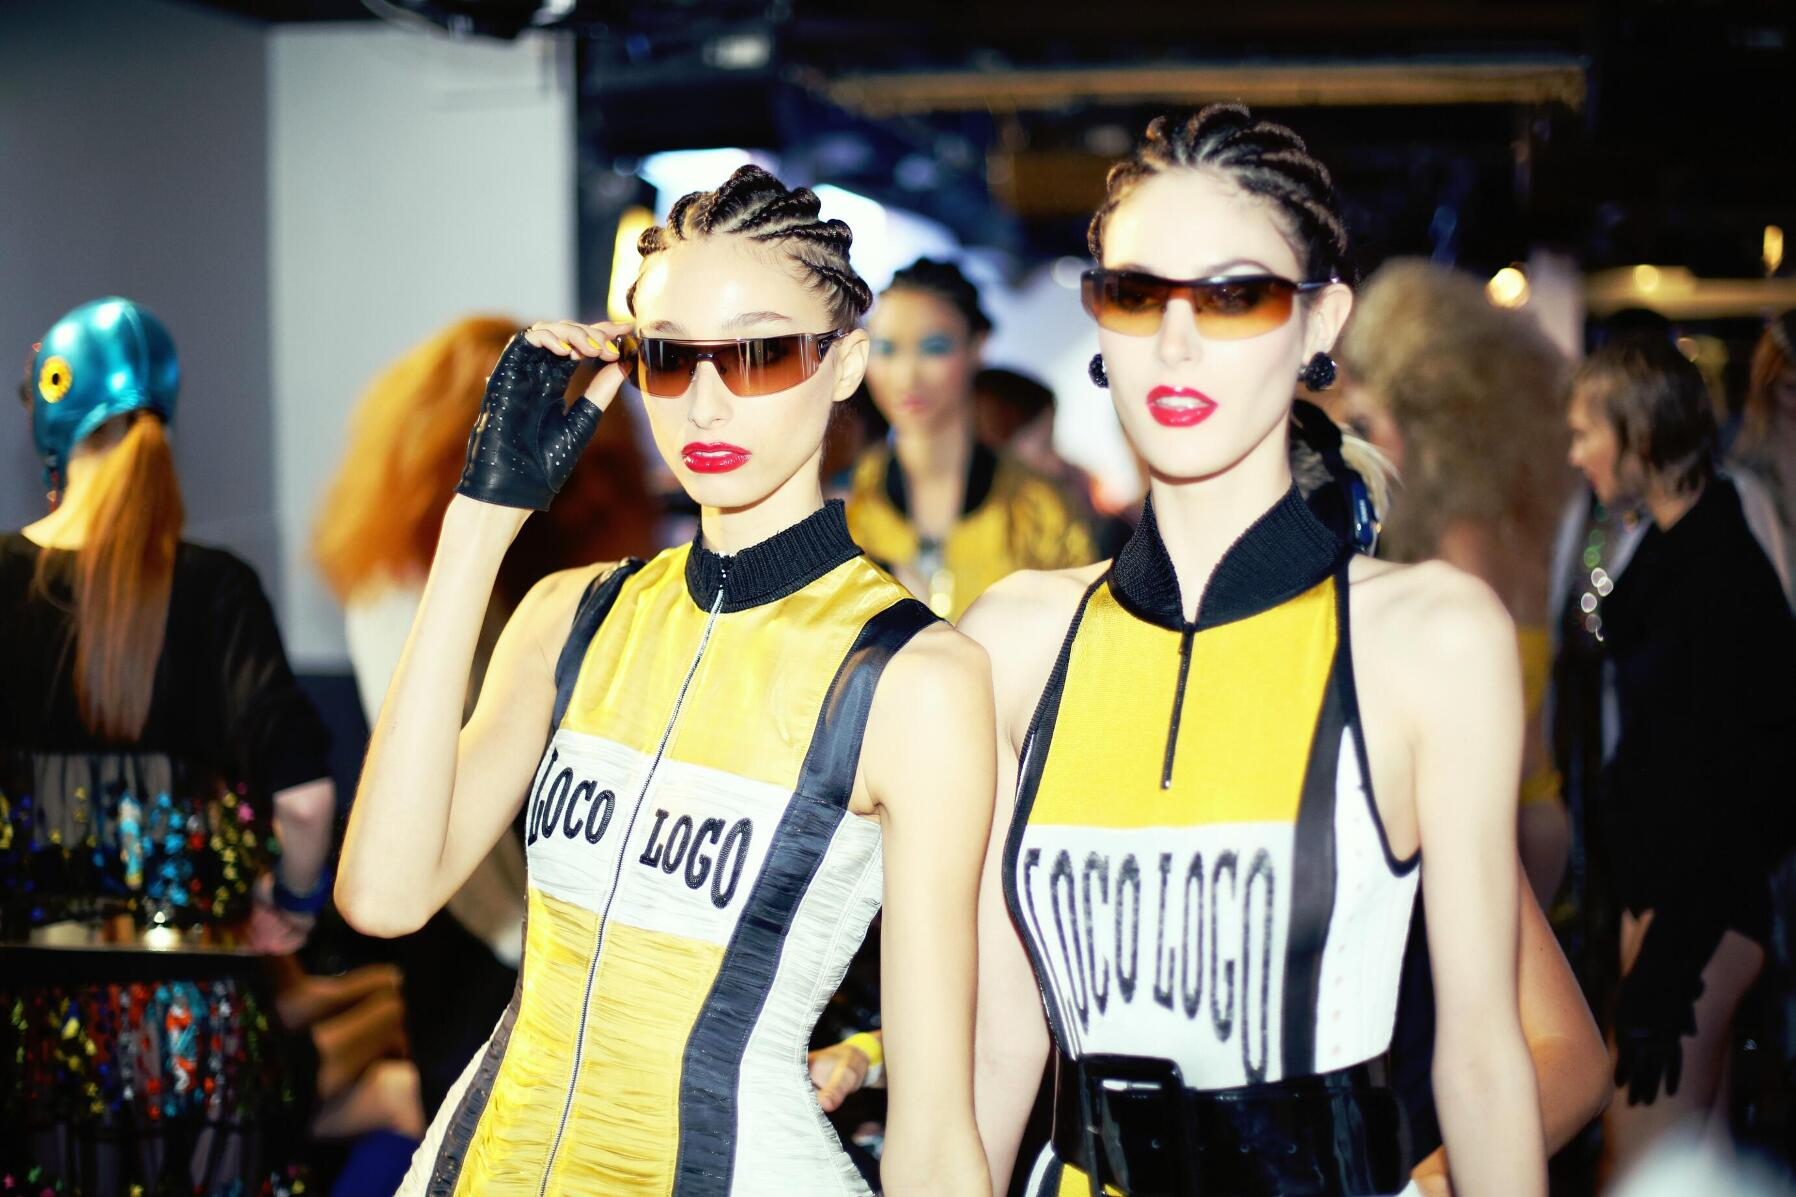 Backstage Jean Paul Gaultier SS 2015 Models